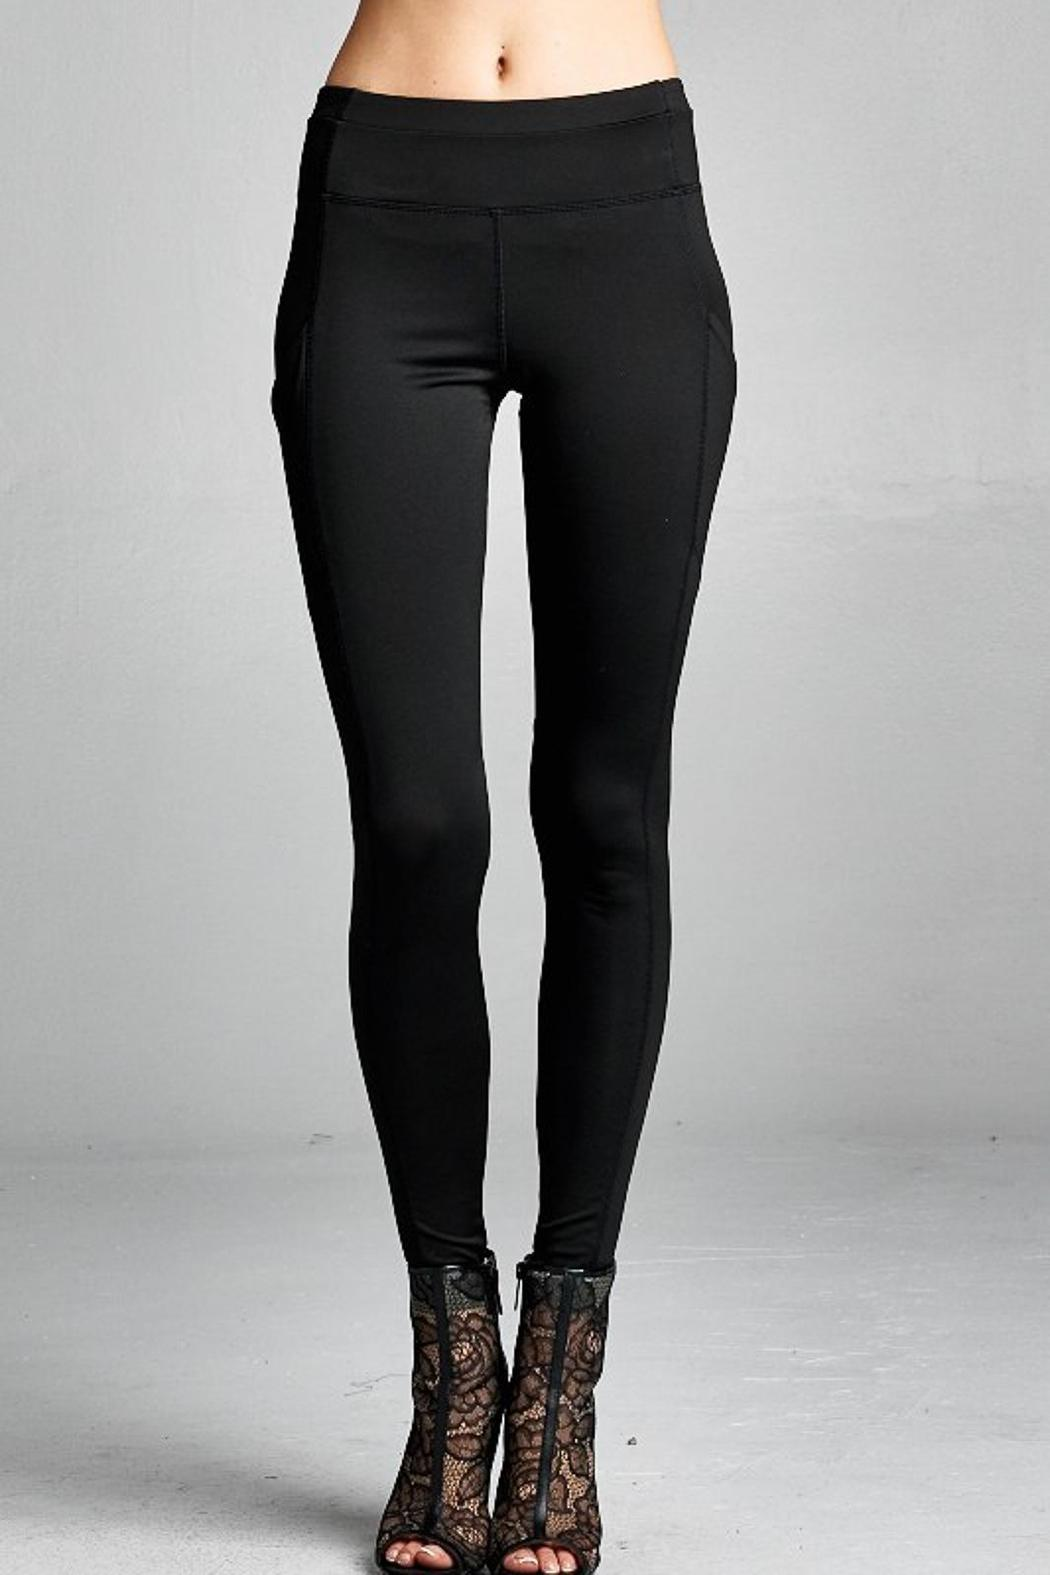 People Outfitter Street Yoga Pants - Front Full Image